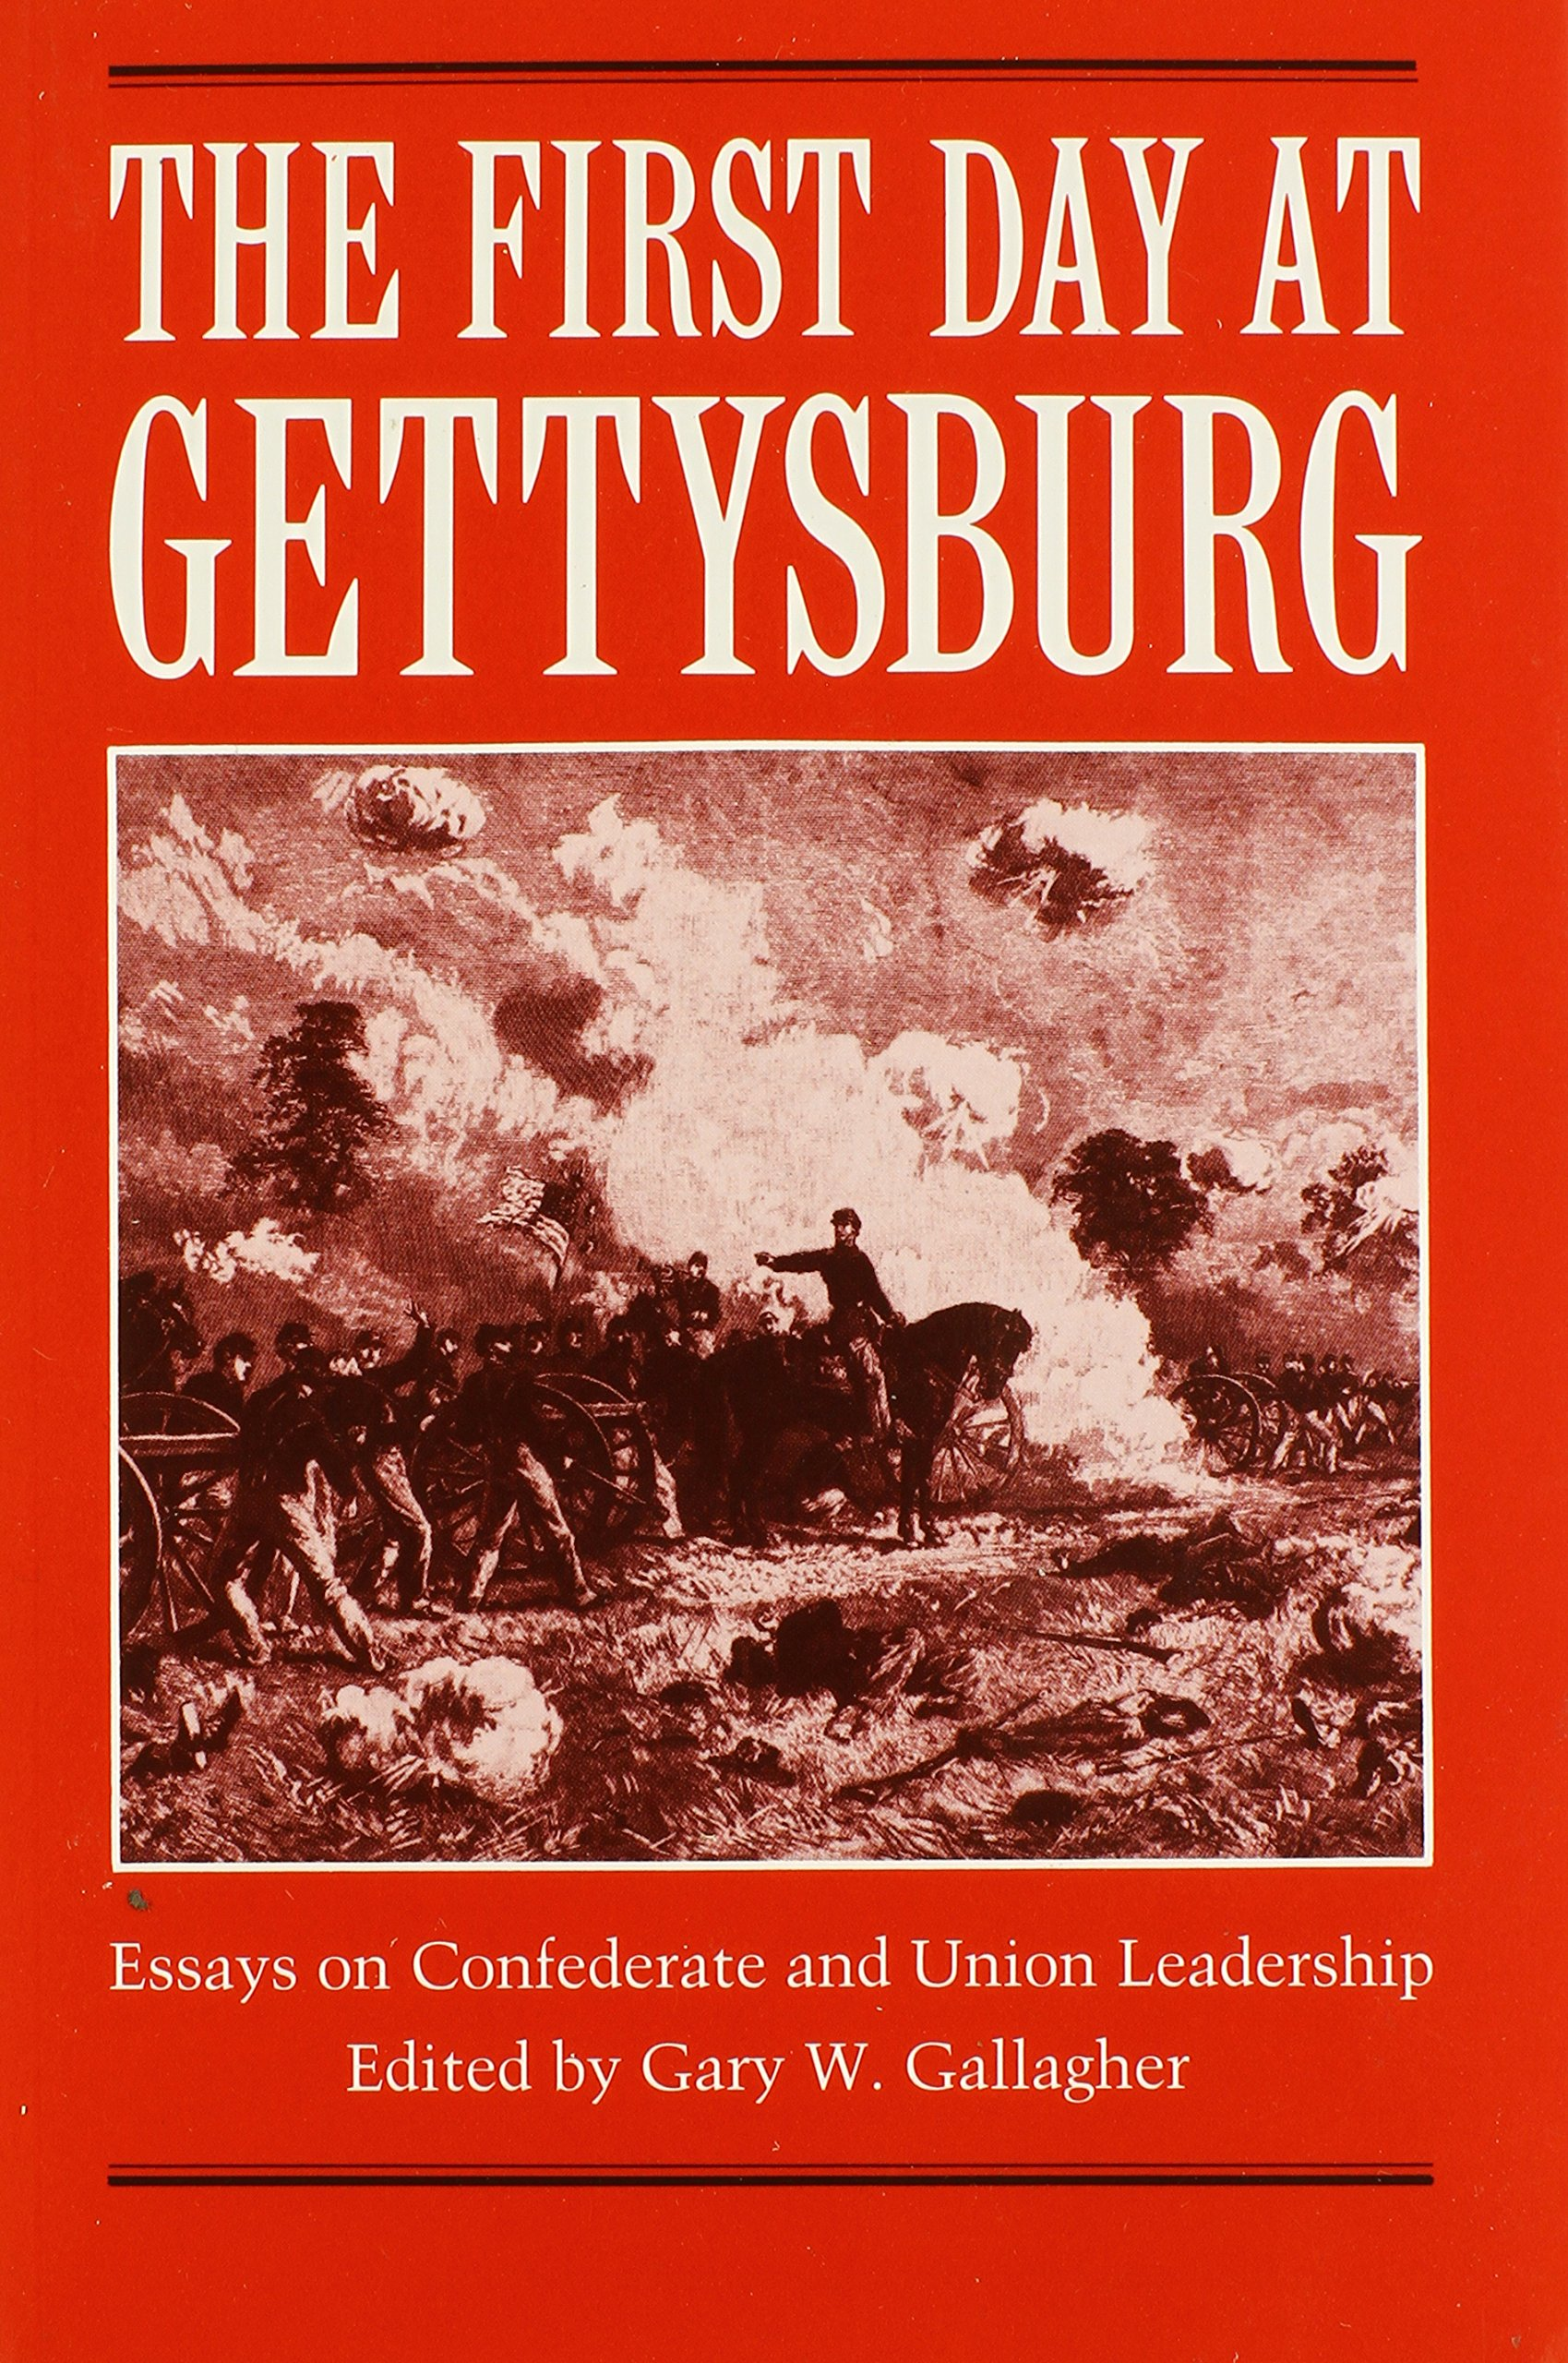 the first day at gettysburg essays on confederate and union the first day at gettysburg essays on confederate and union leadership gary w gallagher 9780873384575 com books